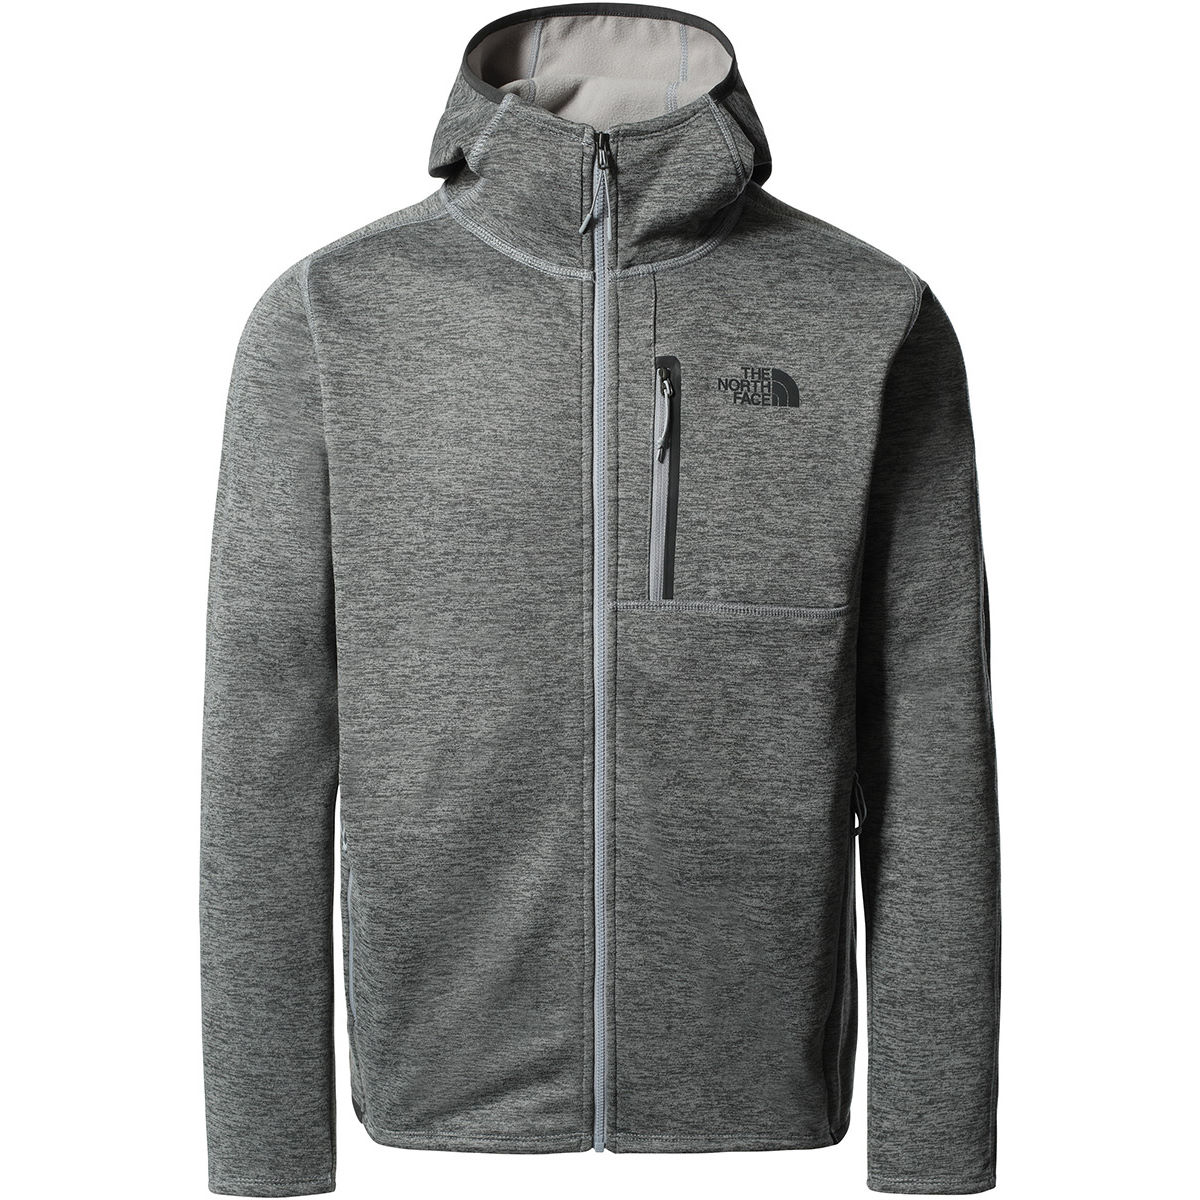 The North Face Canyonlands Hoodie - Sudaderas con capucha